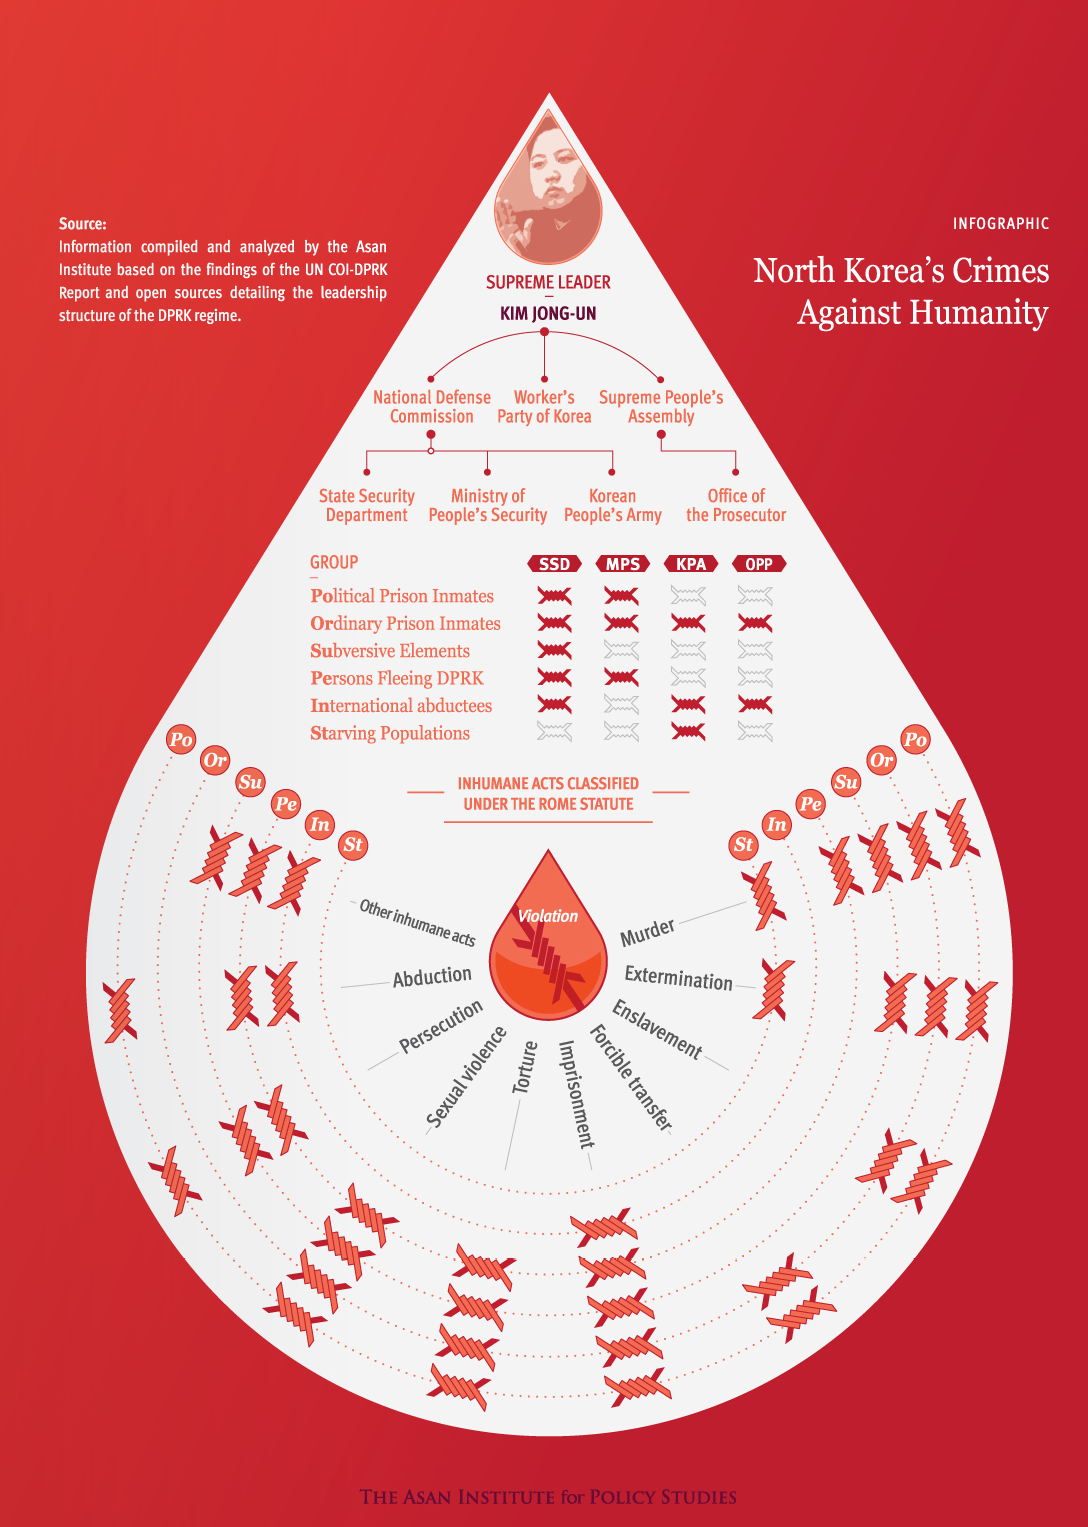 human rights in north korea North korea's leadership is committing systematic and appalling human rights abuses against its own citizens on a scale unparalleled in the modern world, crimes.